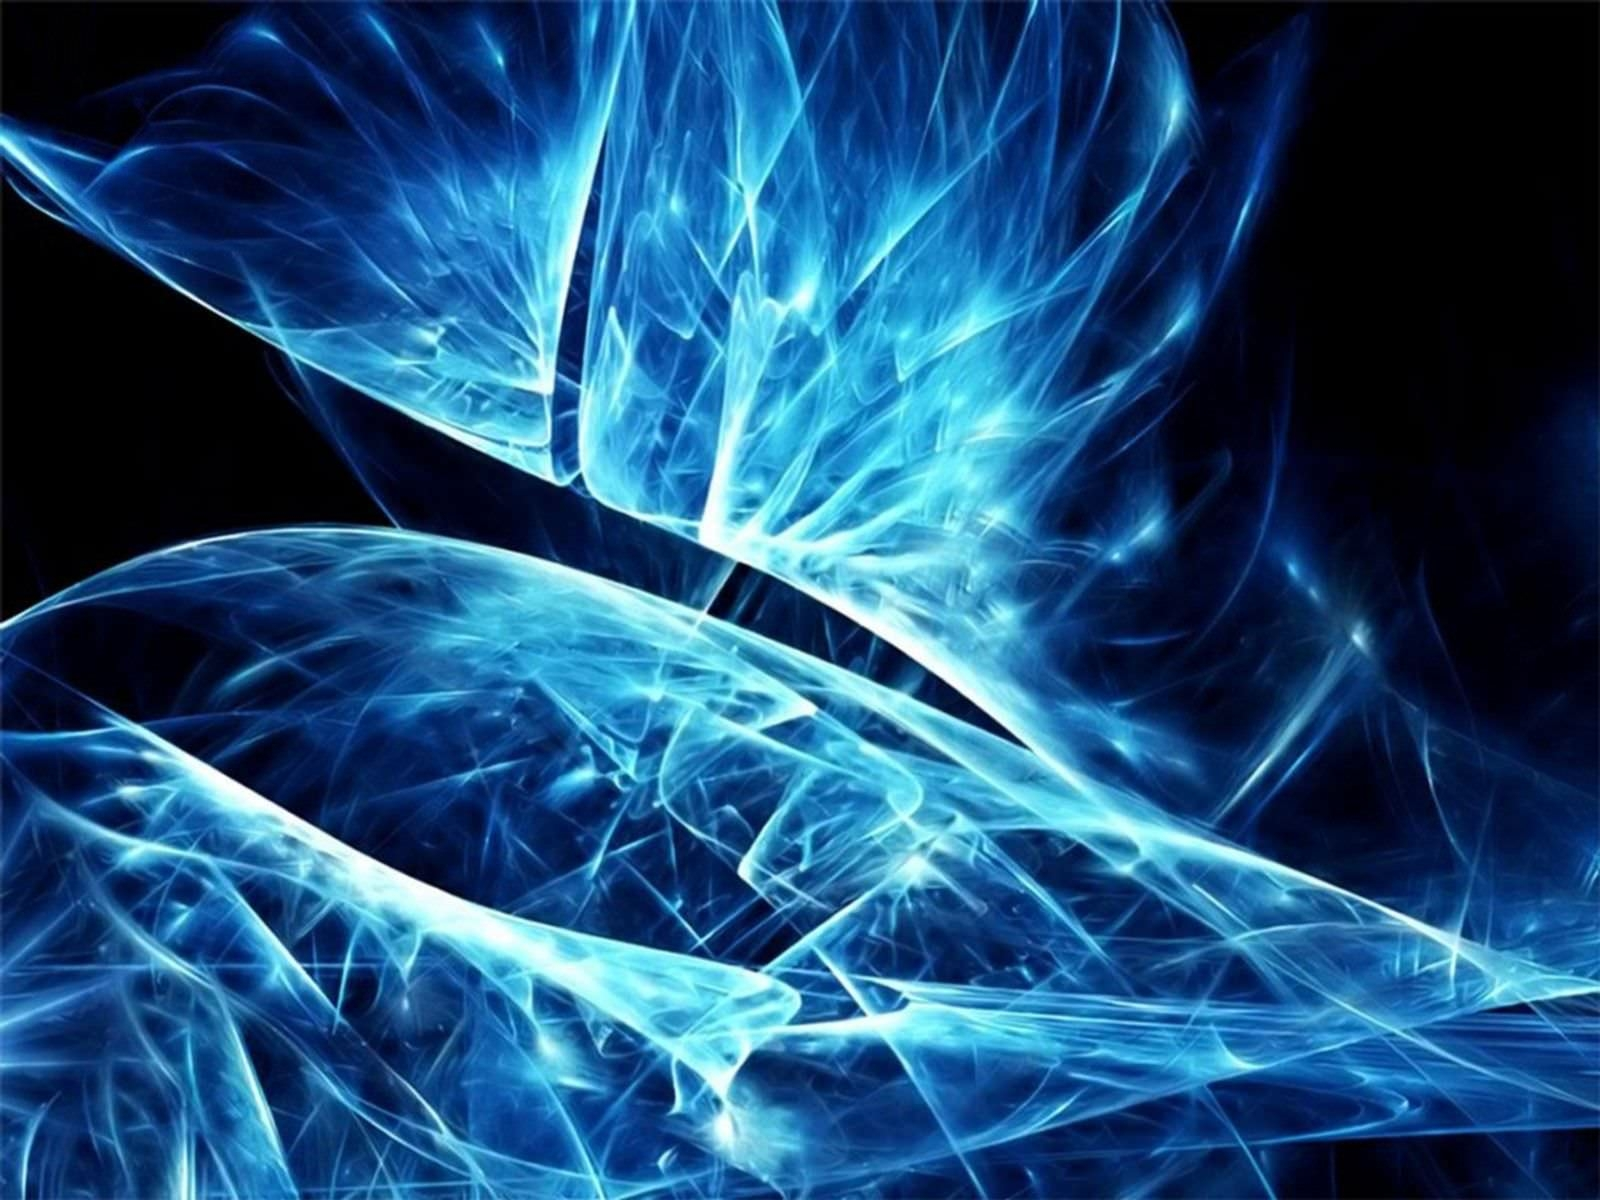 Abstract Black & Blue Wallpaper